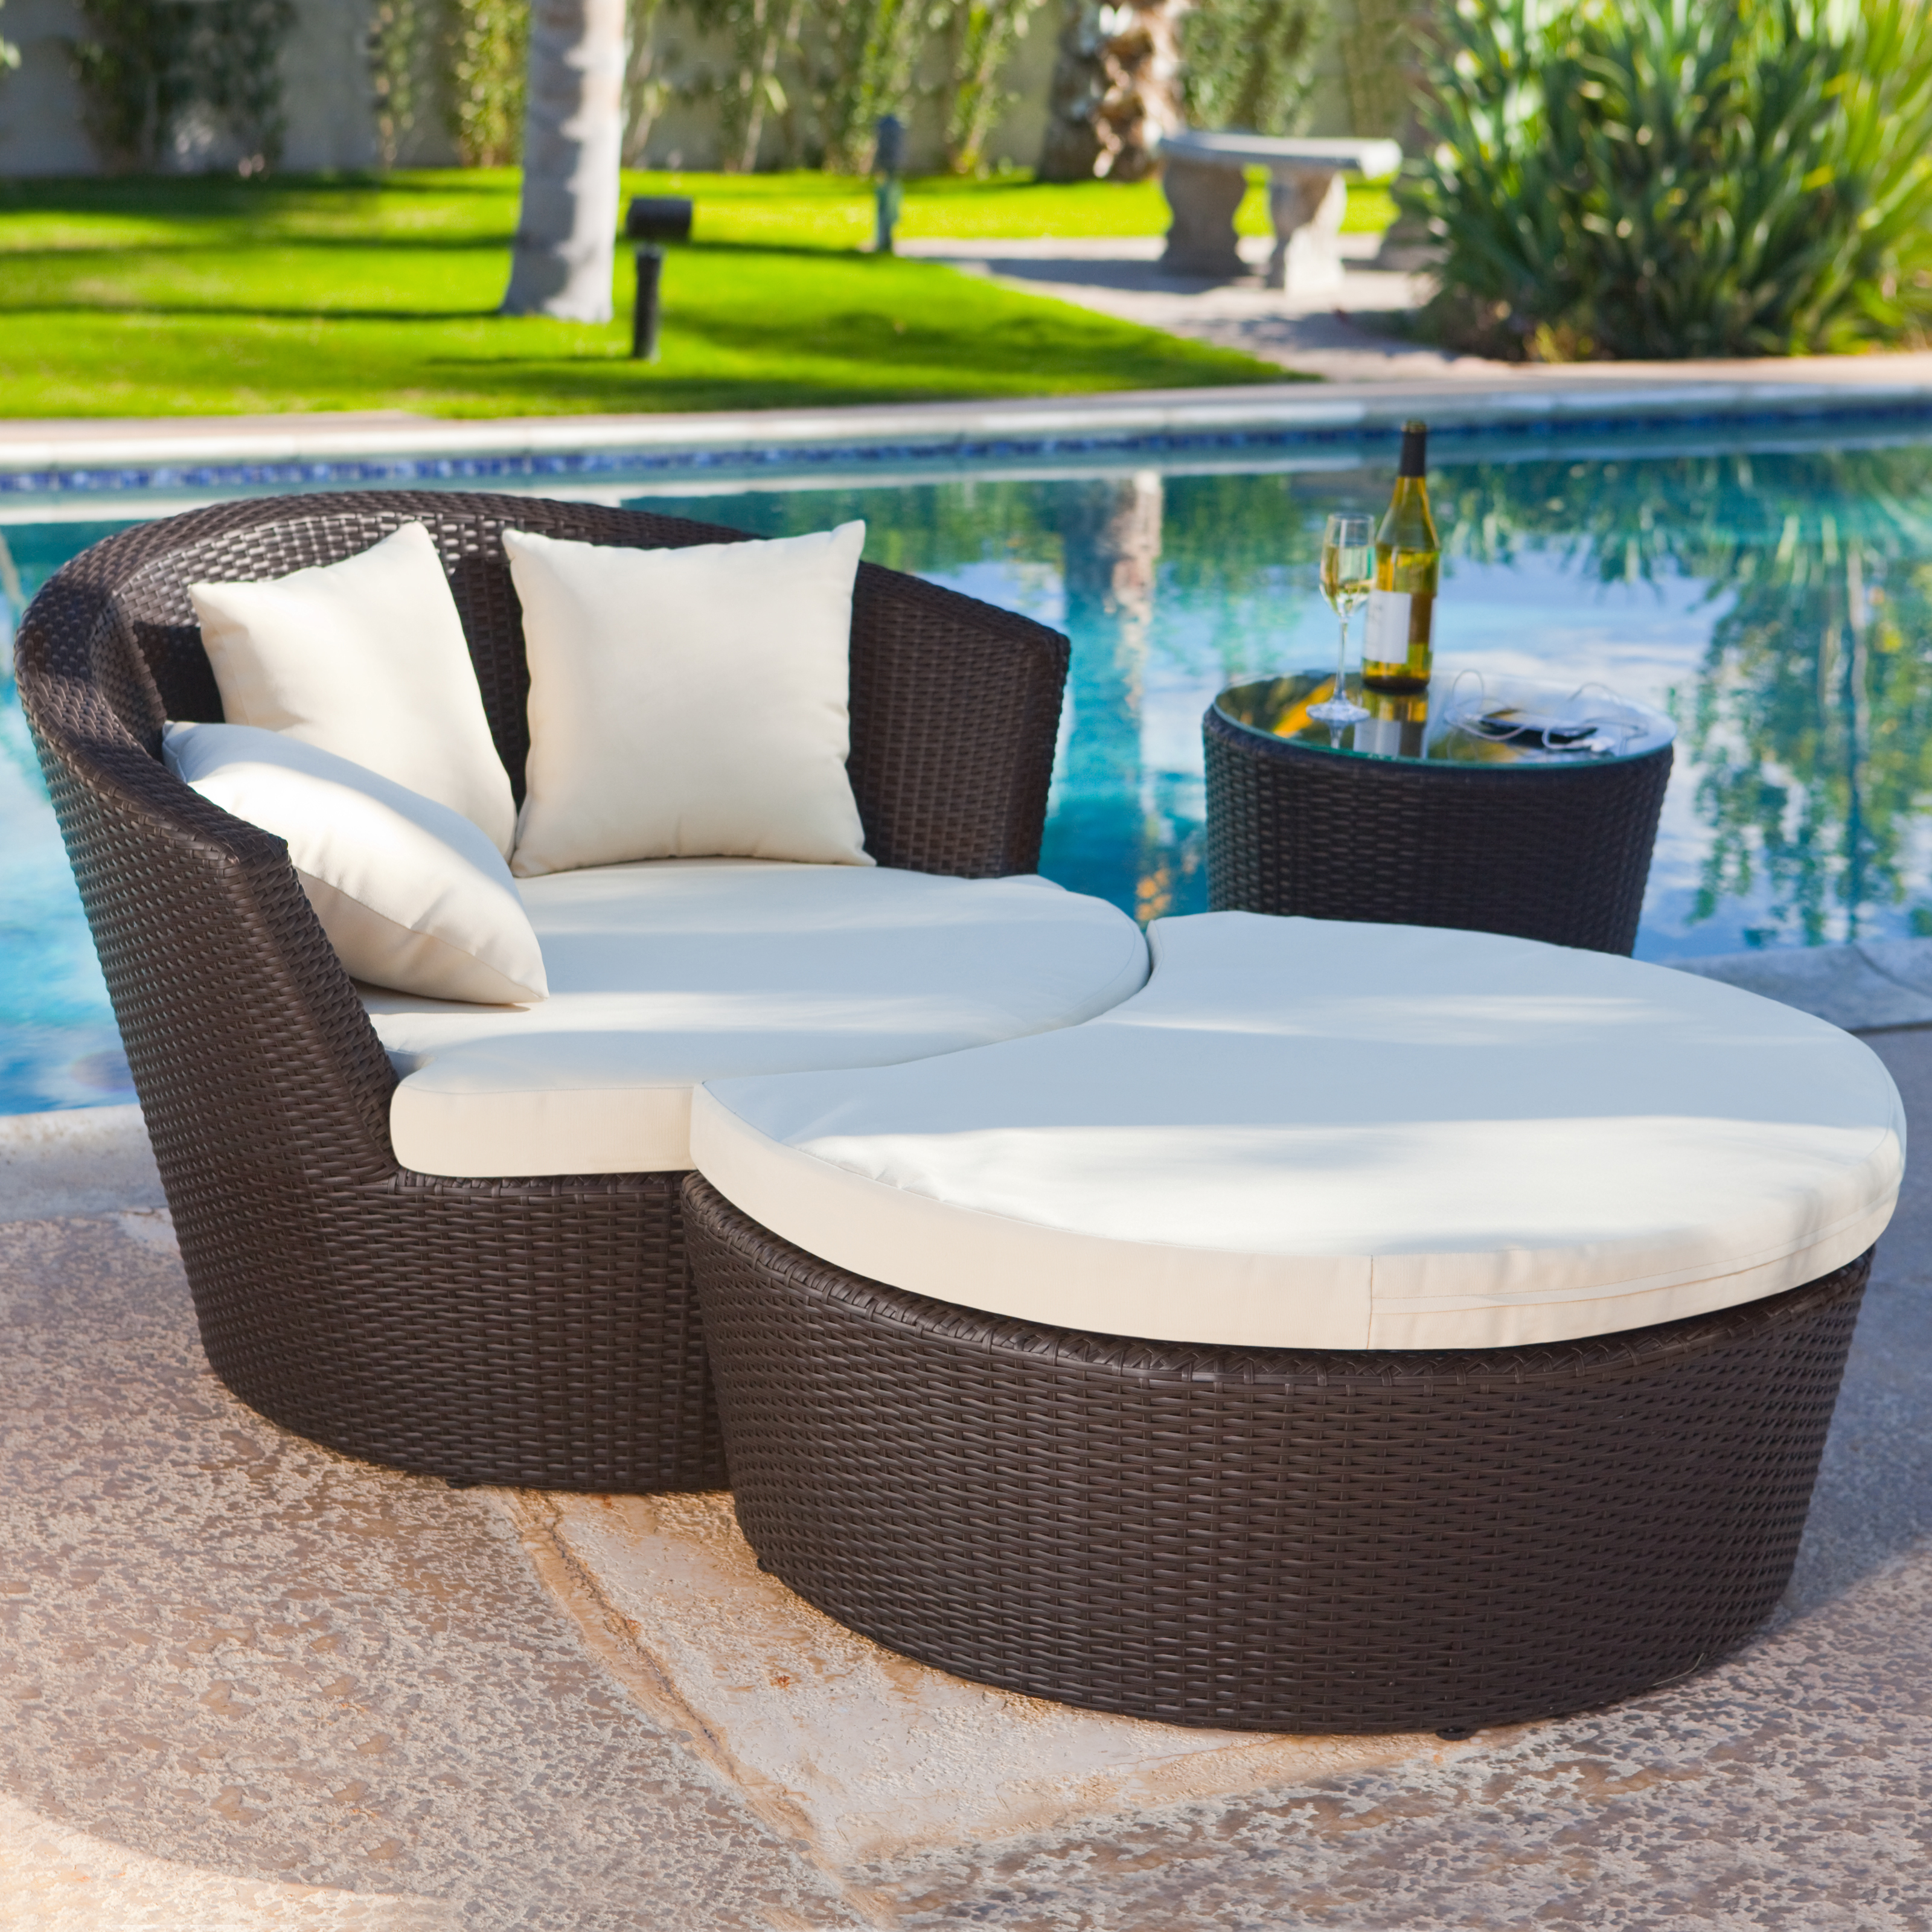 Outdoor Lounge Furniture Masters. Landscape Ideas For A Corner Lot 10009010   Ongek net